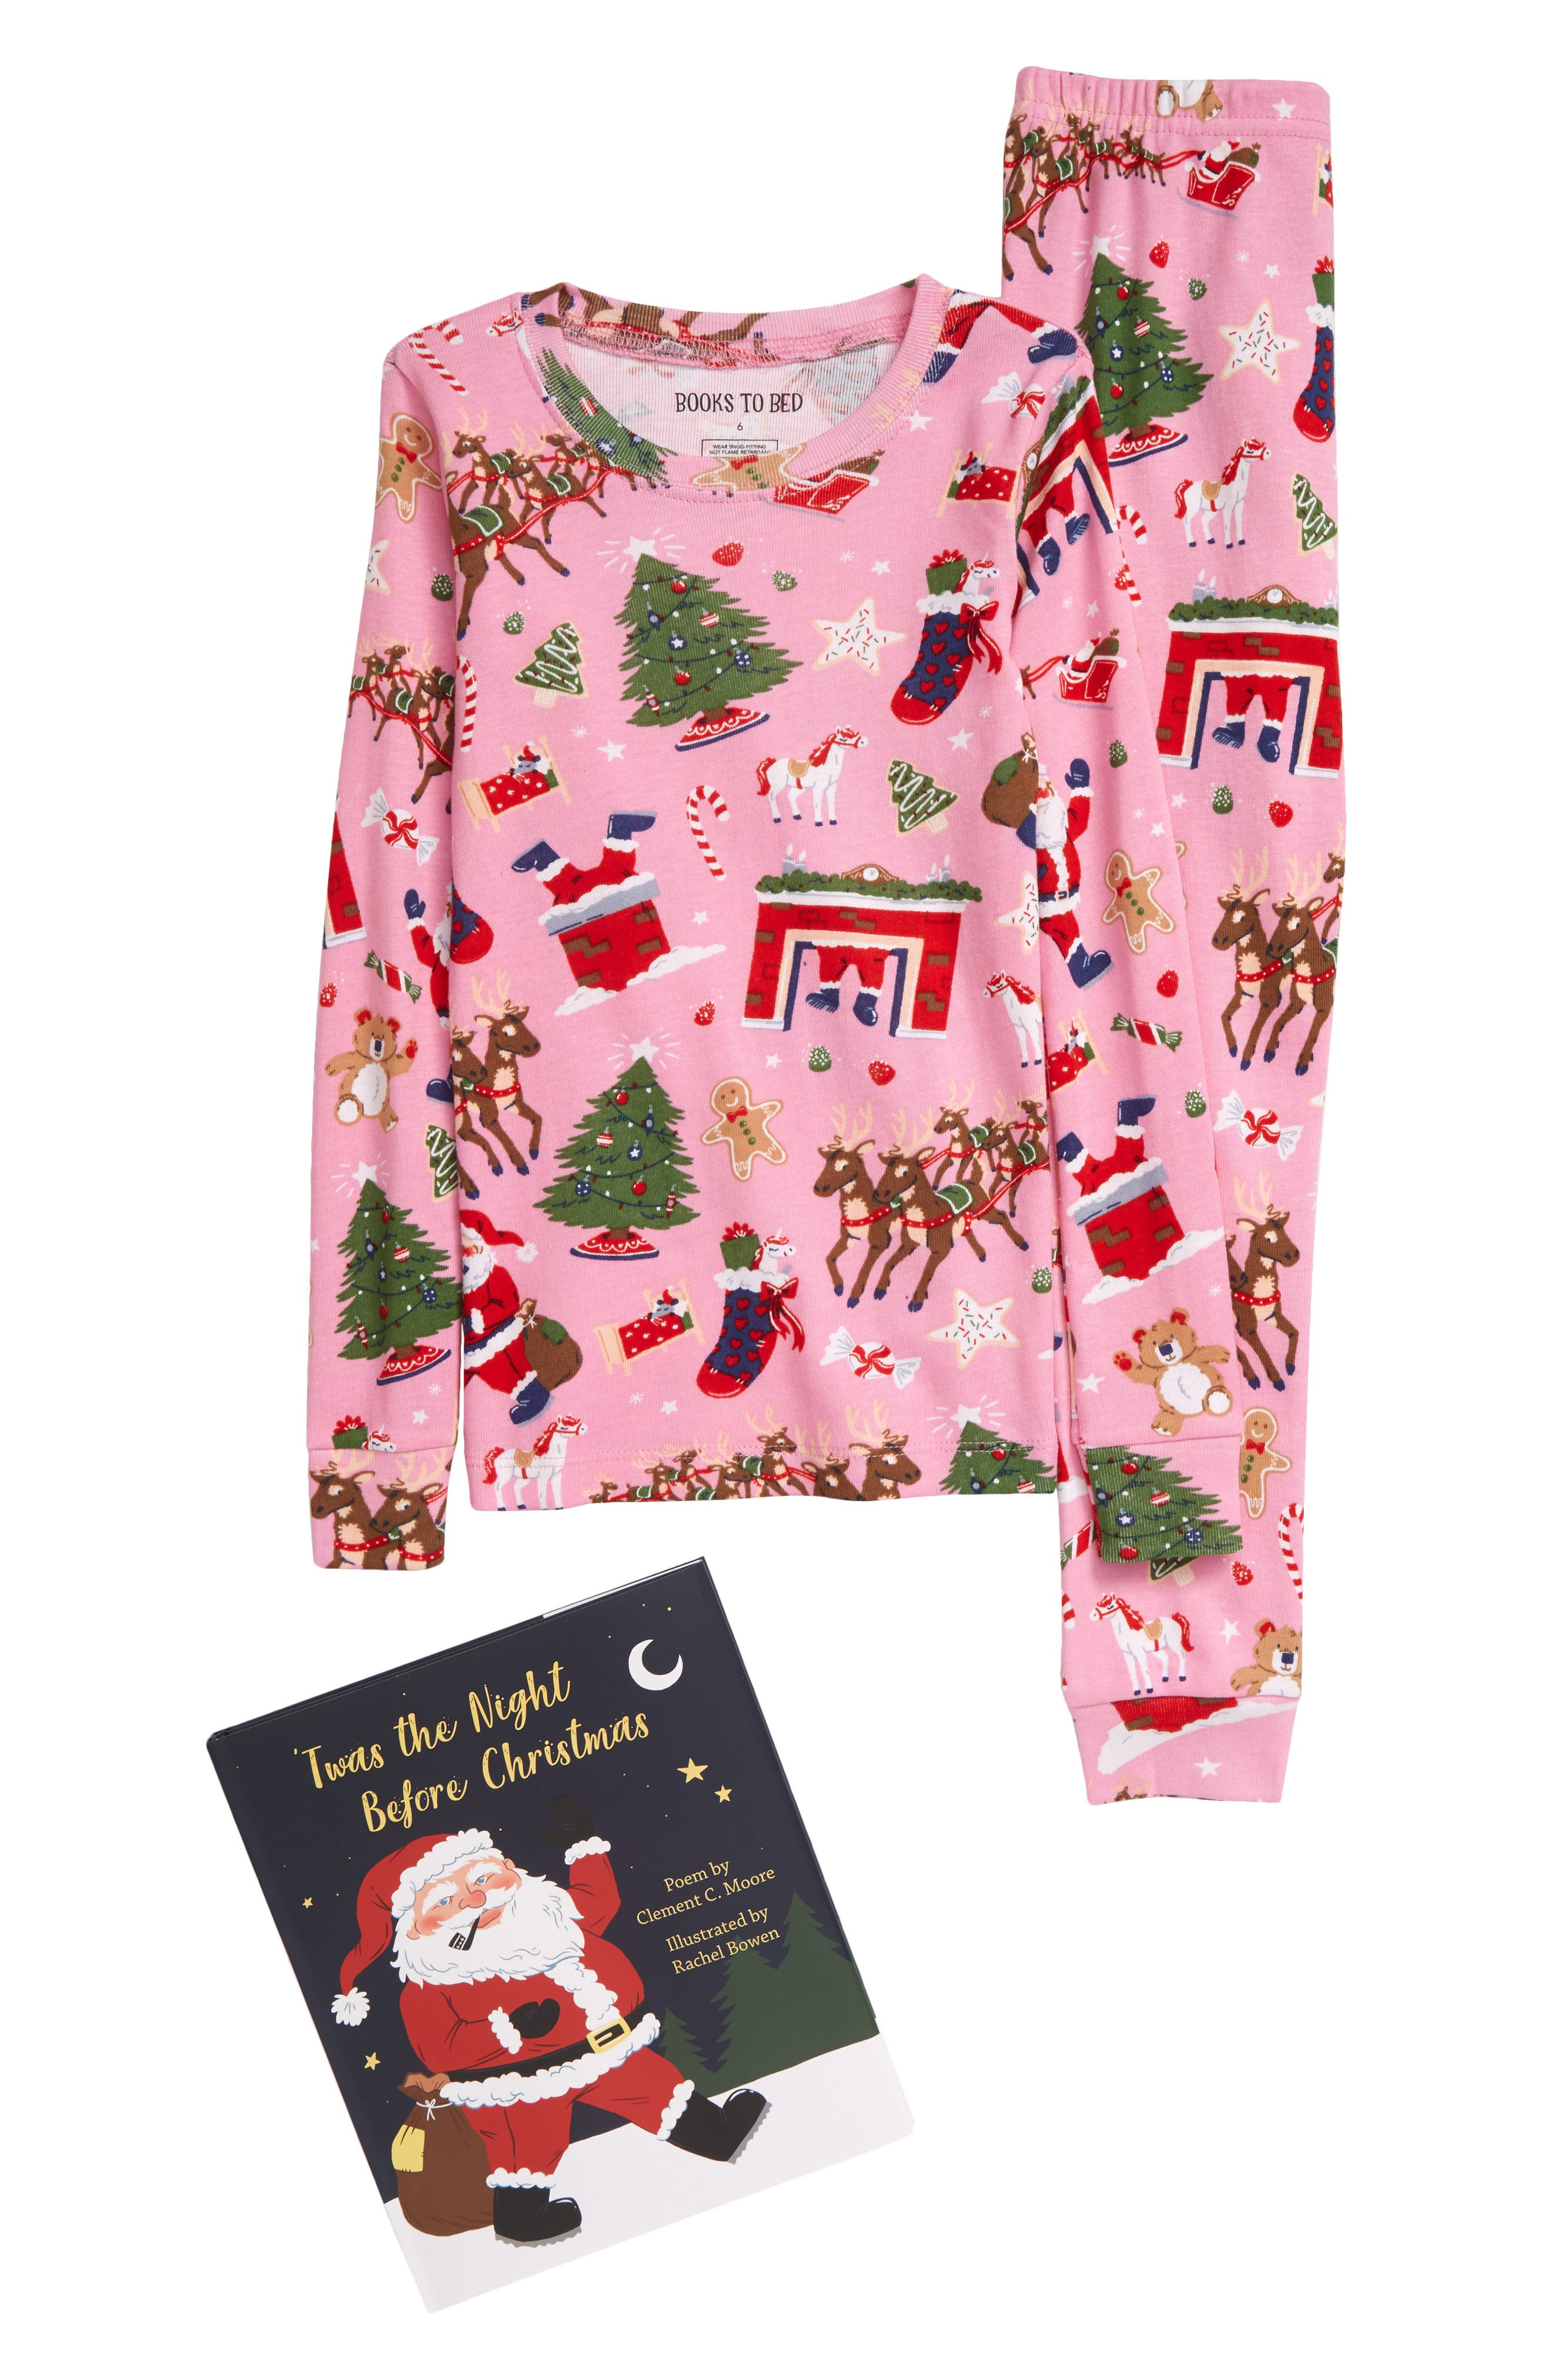 Toddler Girl's Hatley Christmas Organic Cotton Fitted Two-Piece Pajamas & Book Gift Set, Size 2T - Pink